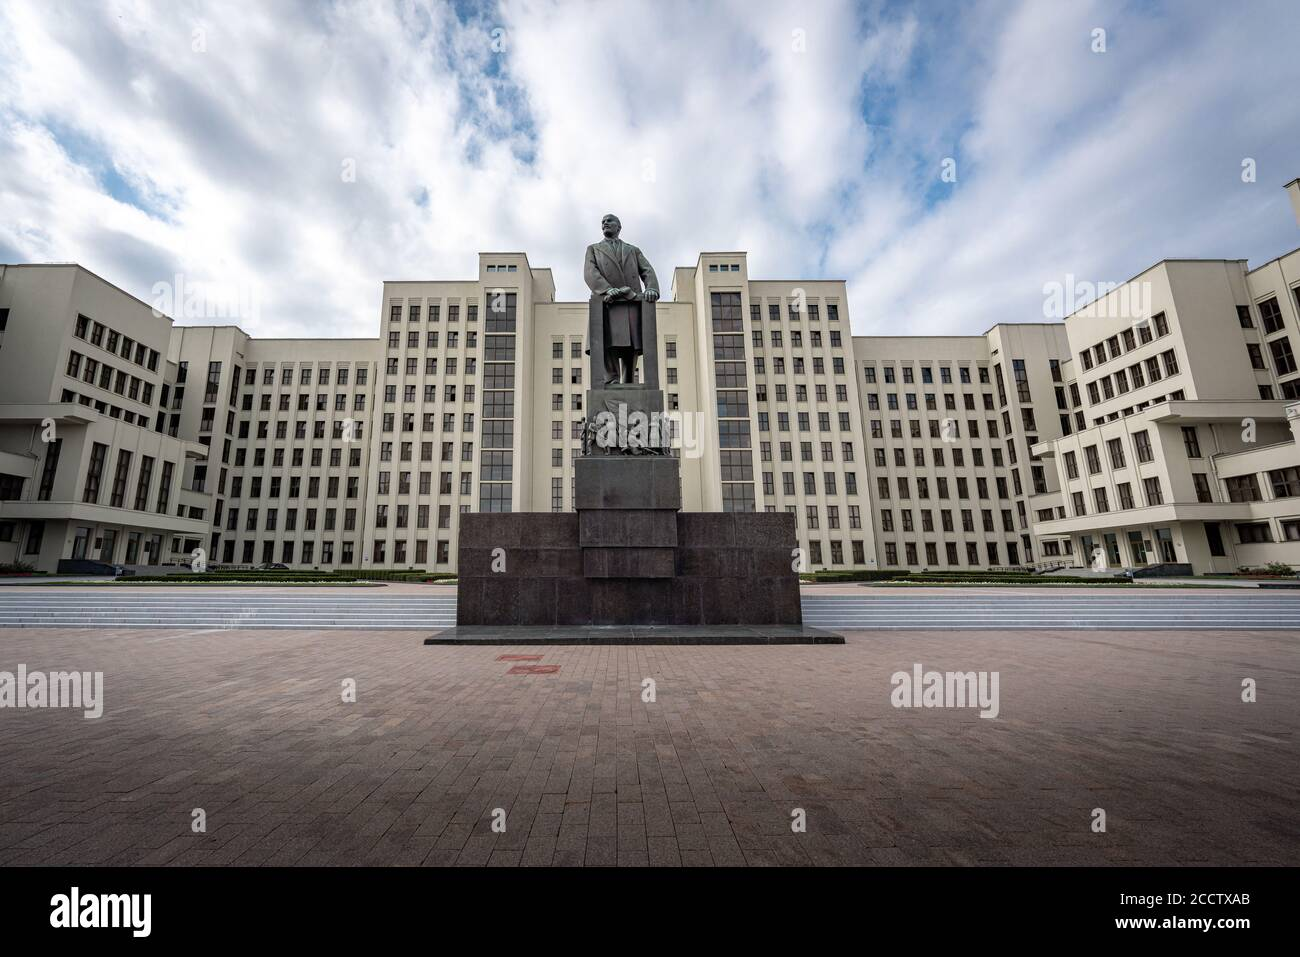 House of Government and Lenin Monument - Minsk, Belarus Stock Photo